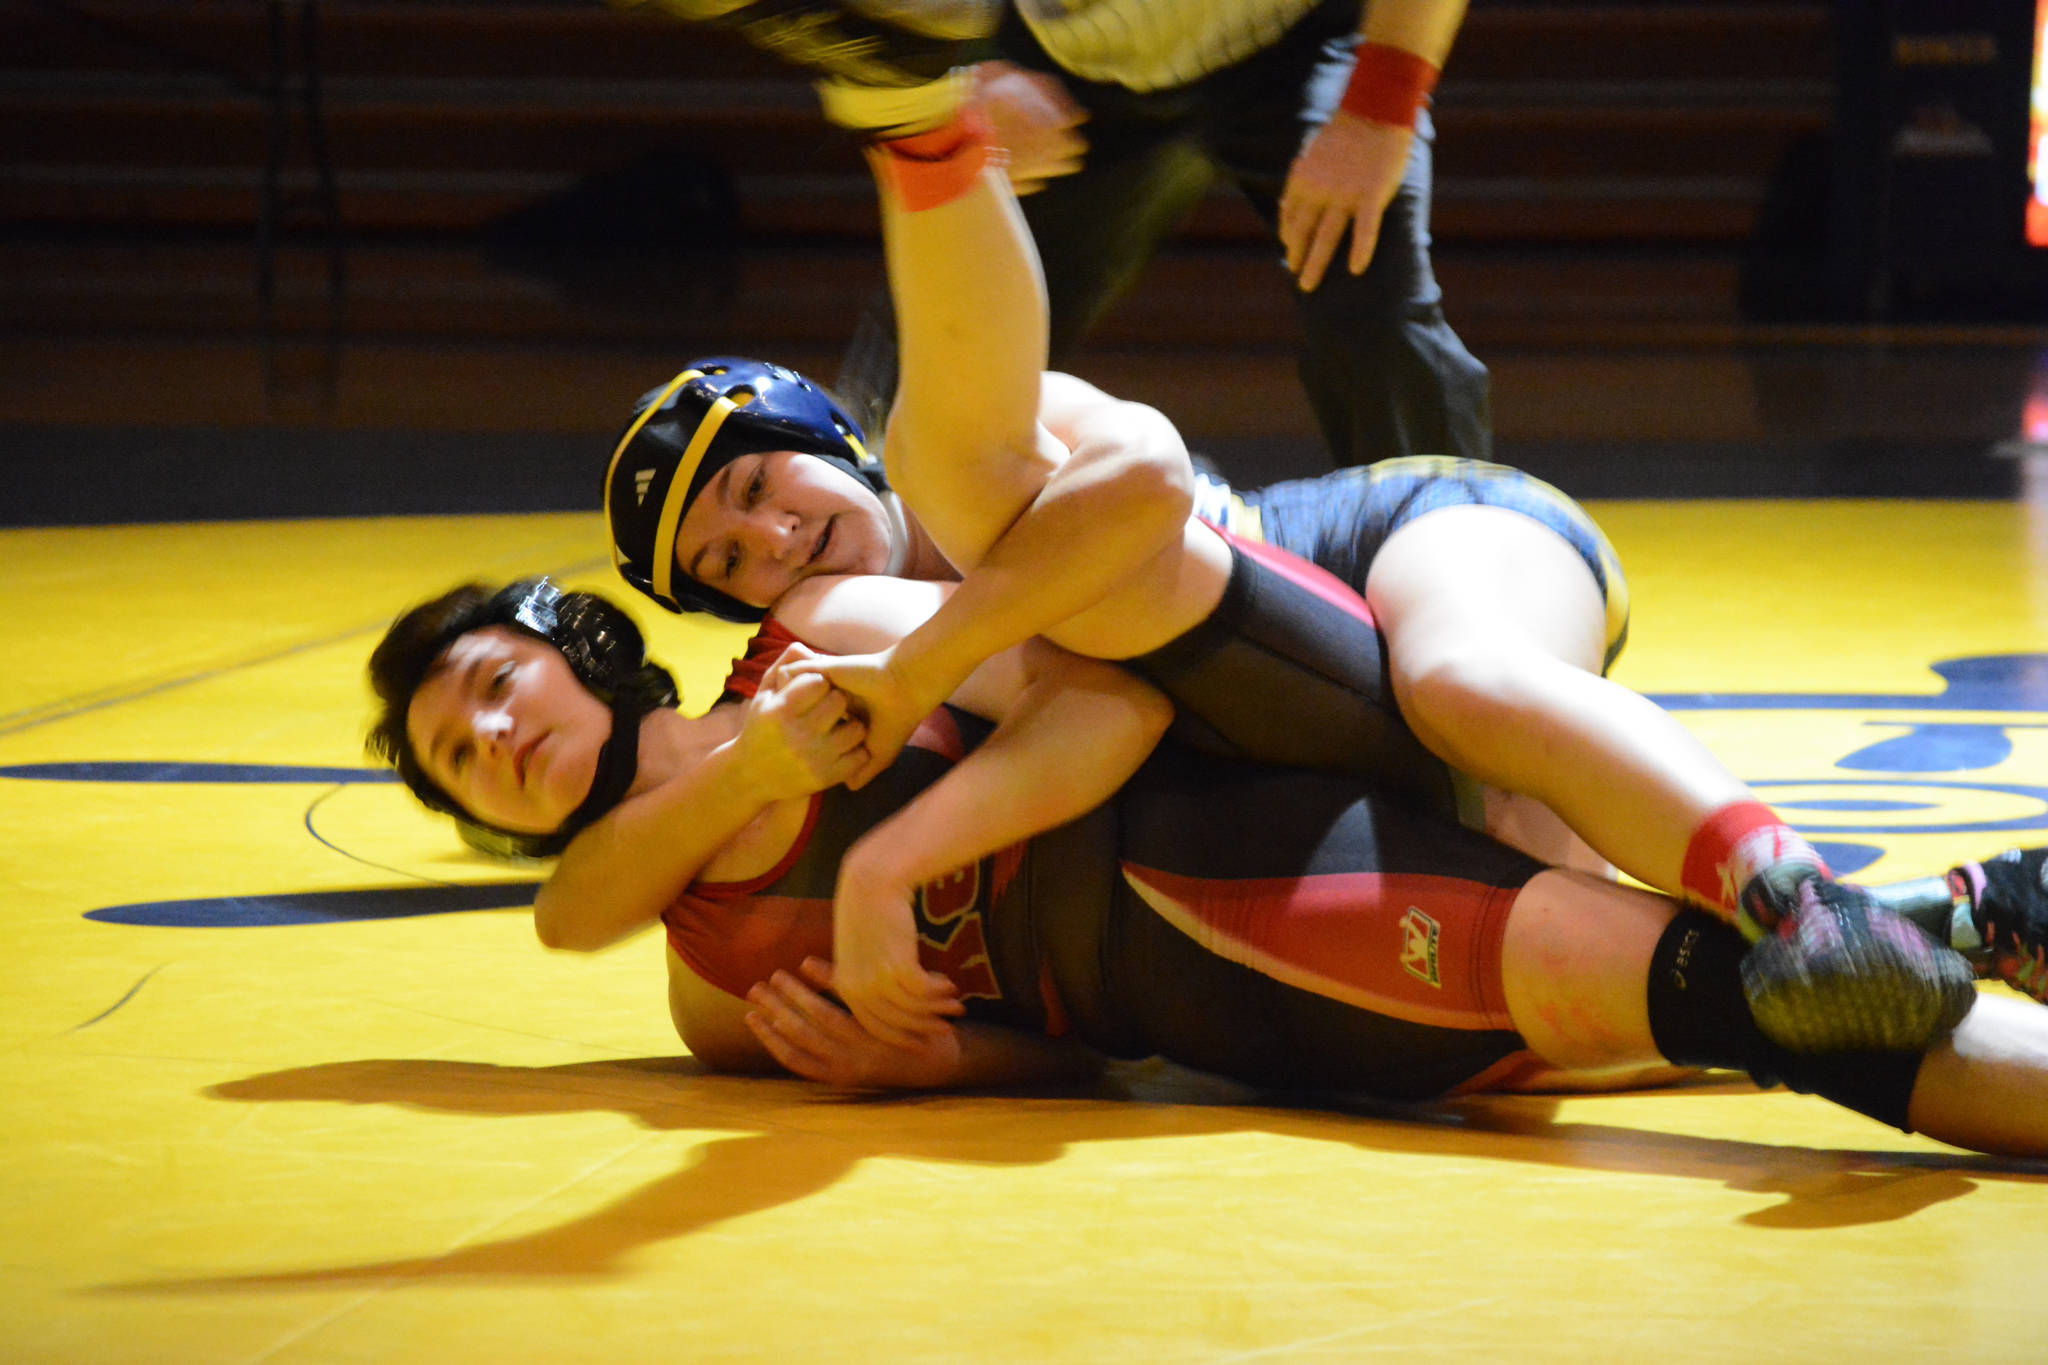 Homer High School Mariner Mina Cavasos, top, wrestles with Kenai High School Kardinal Olivia Easley,bottom, in an exhibition meet held Wednesday, Nov. 21, 2018, at the Homer High School Alice Witte Gym in Homer, Alaska. (Photo by Michael Armstrong/Homer News)